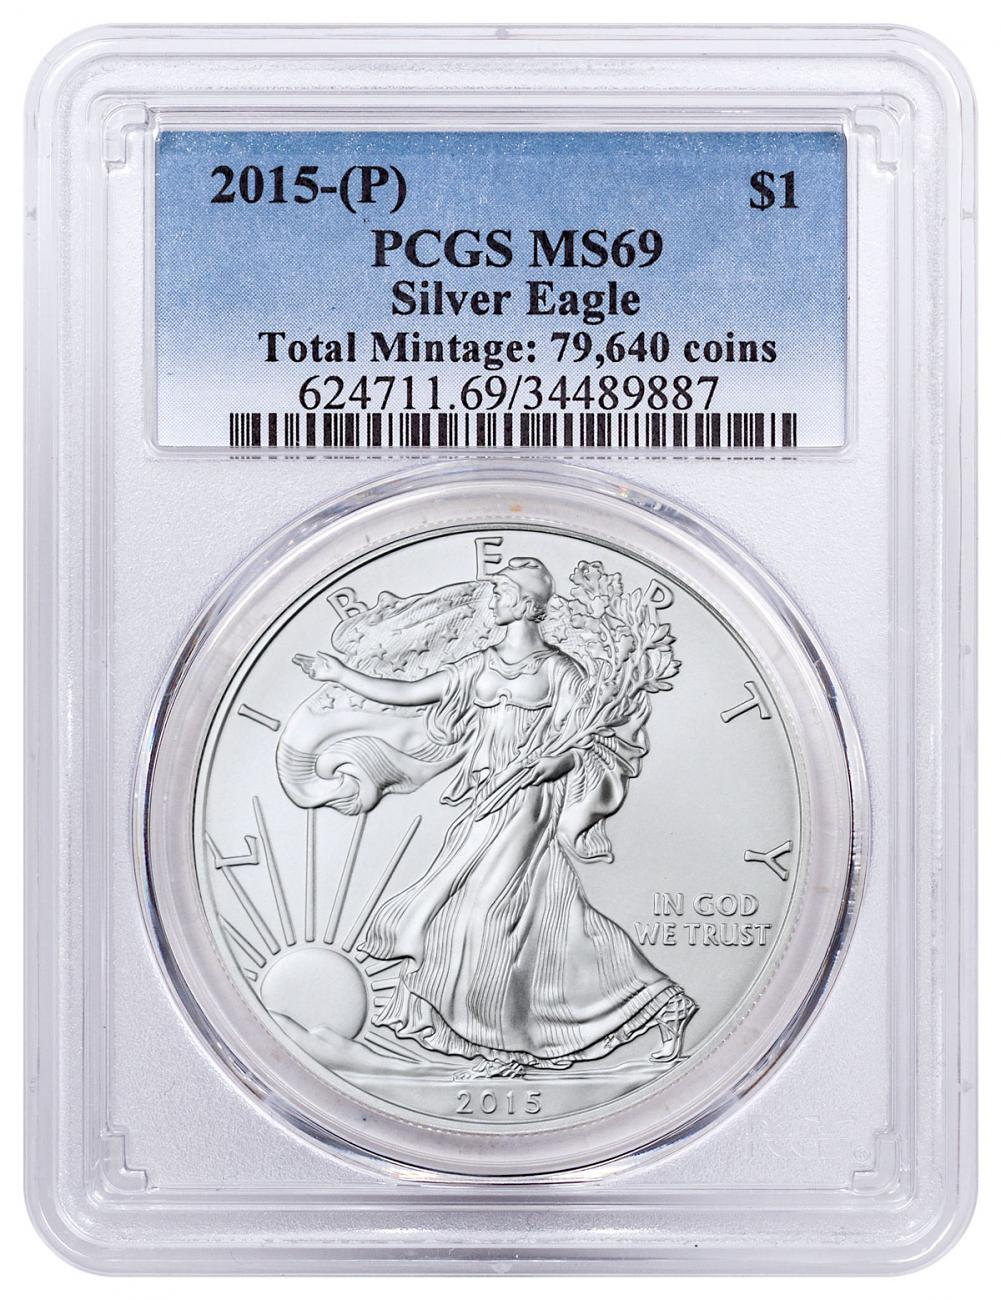 2015-(P) Silver Eagle Struck at Philadelphia One of 79,640 Struck PCGS MS69